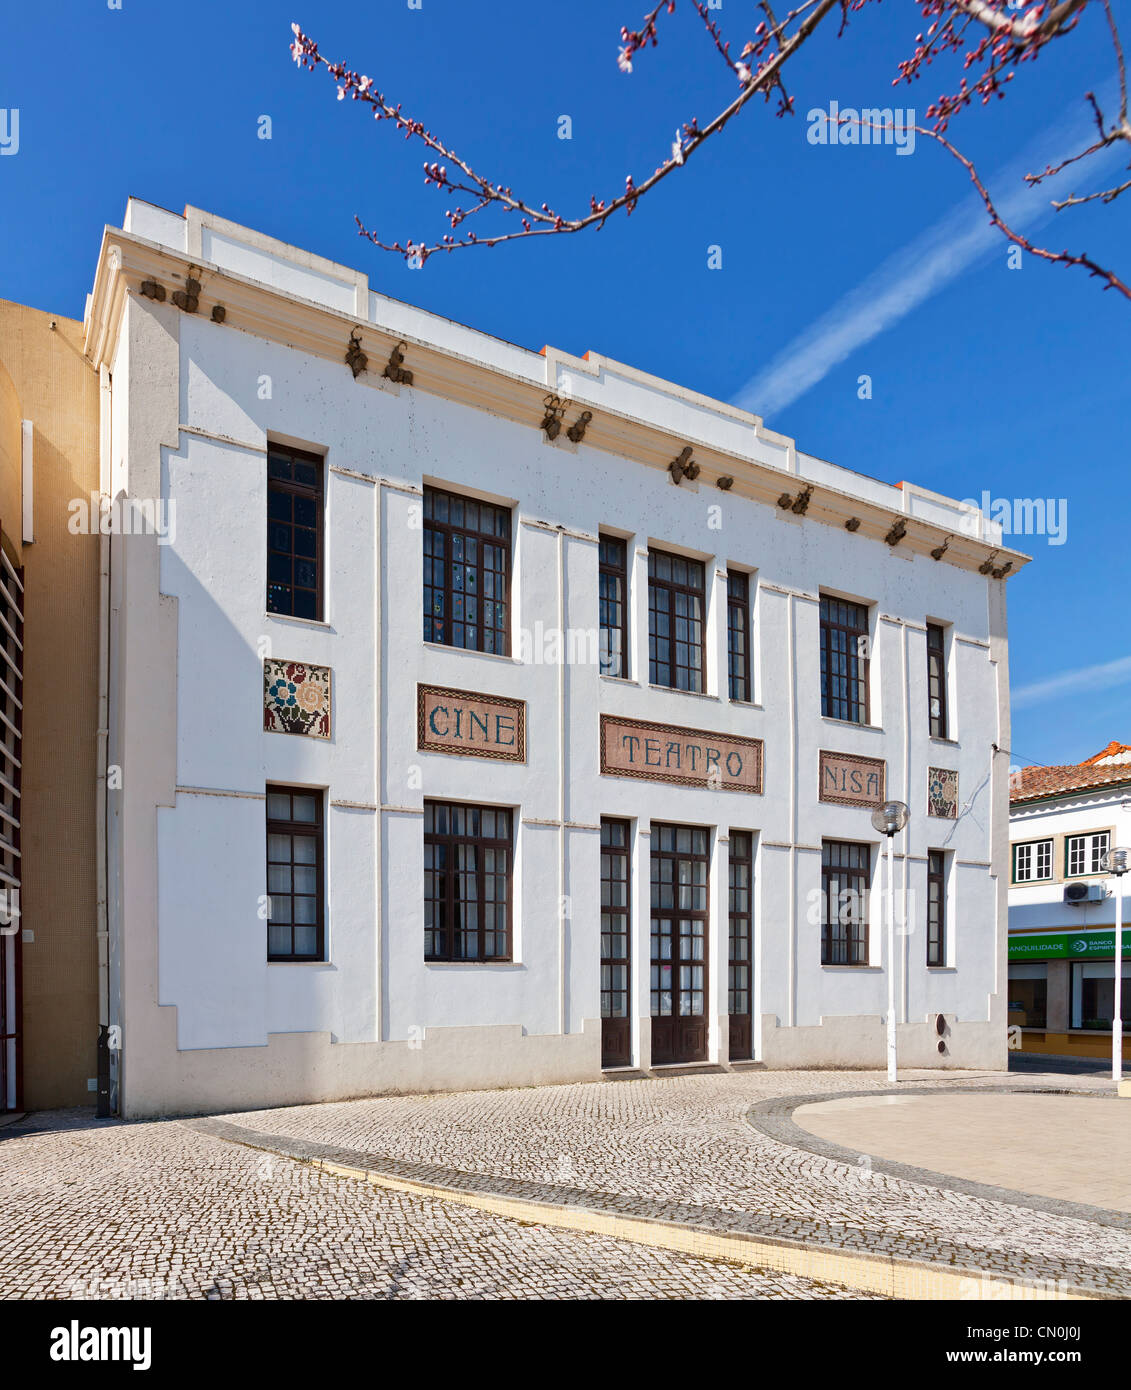 The Cine-Teatro (cinema and theater) of Nisa. Nisa, Portugal. - Stock Image